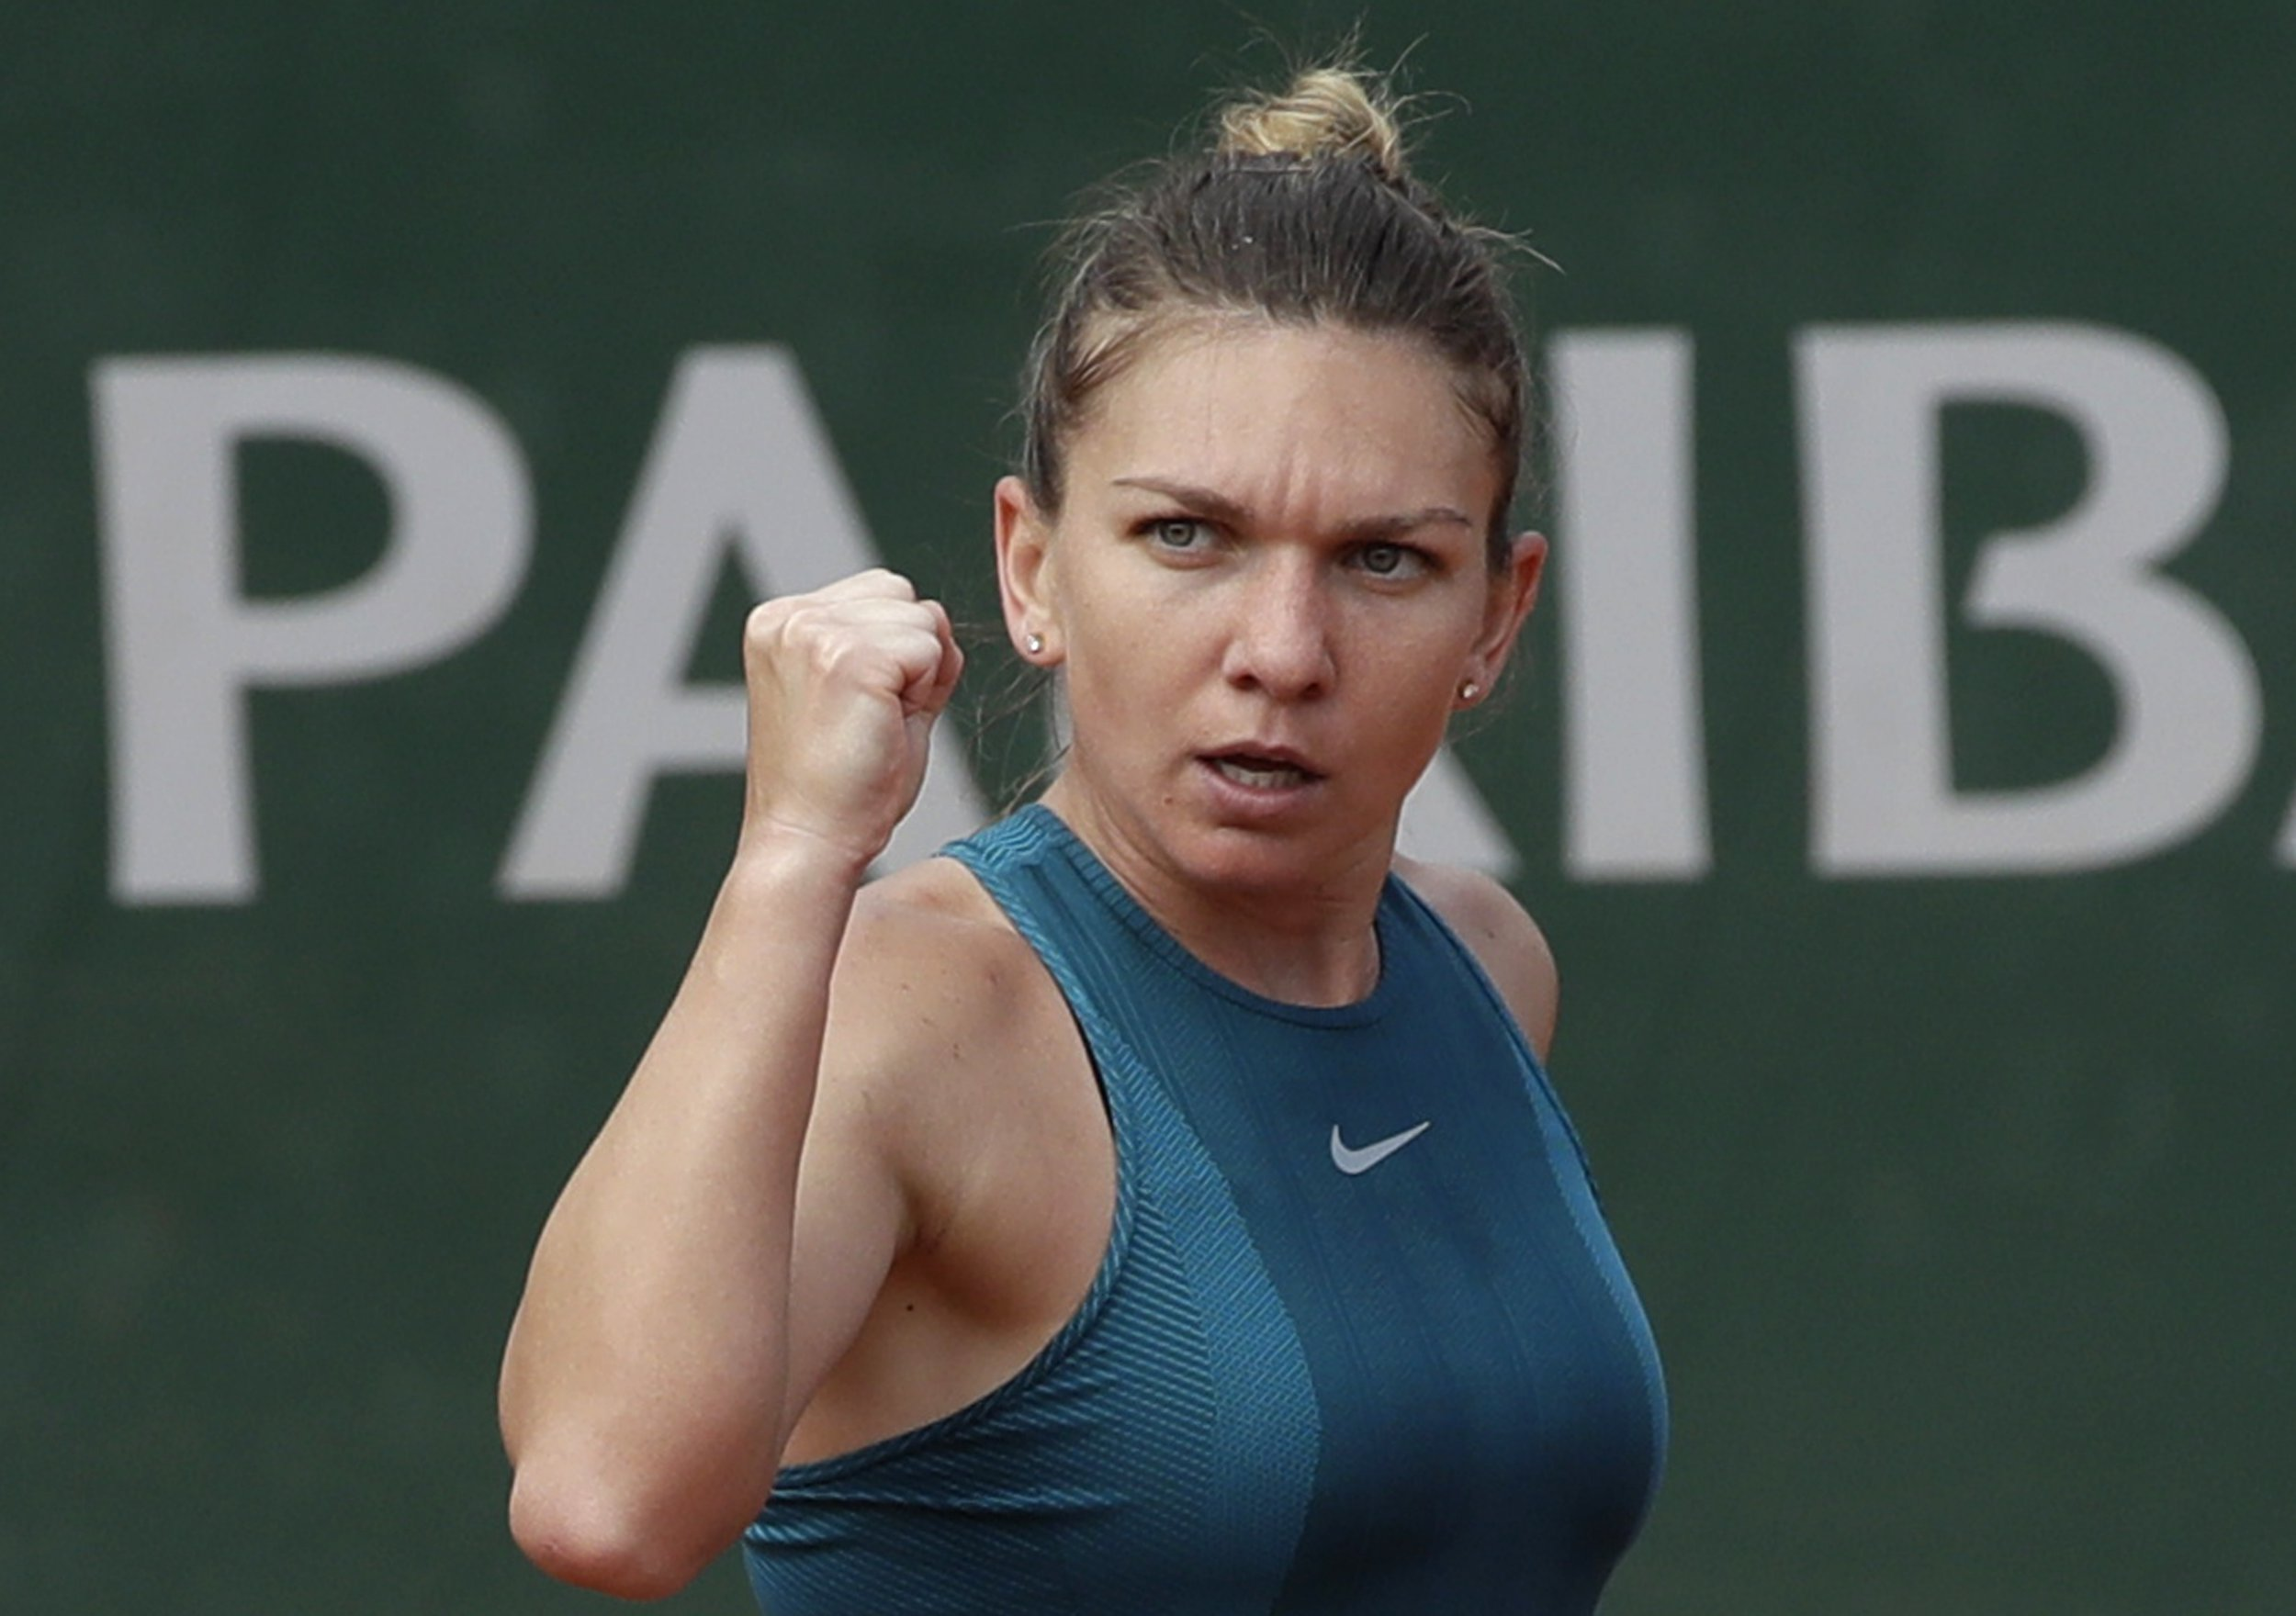 Romania's Simona Halep reacts after winning a point against Germany's Angelique Kerber during their quarterfinal match of the French Open tennis tournament at the Roland Garros stadium, Wednesday, June 6, 2018 in Paris. (AP Photo/Alessandra Tarantino)